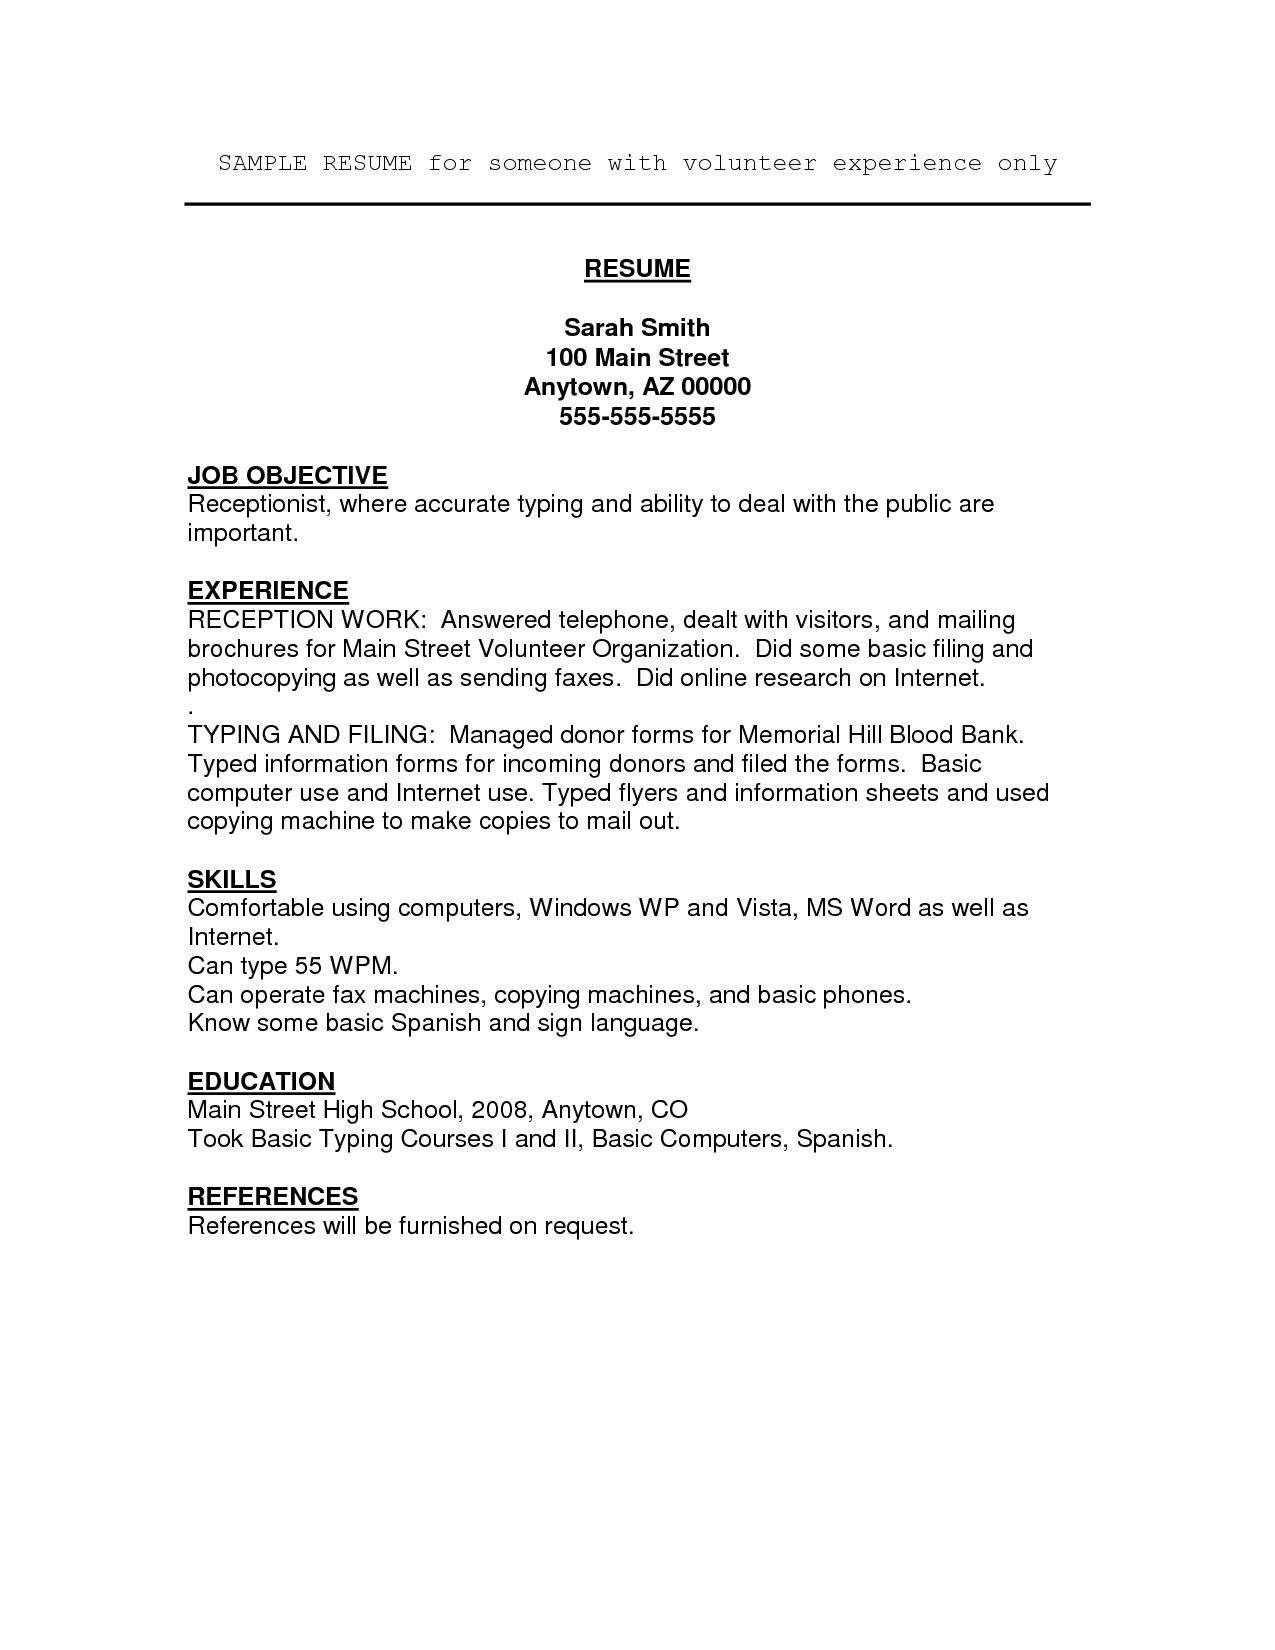 Skills Section On Resume New Job Resume Volunteer Experience  Httpwwwresumecareerjob Design Inspiration